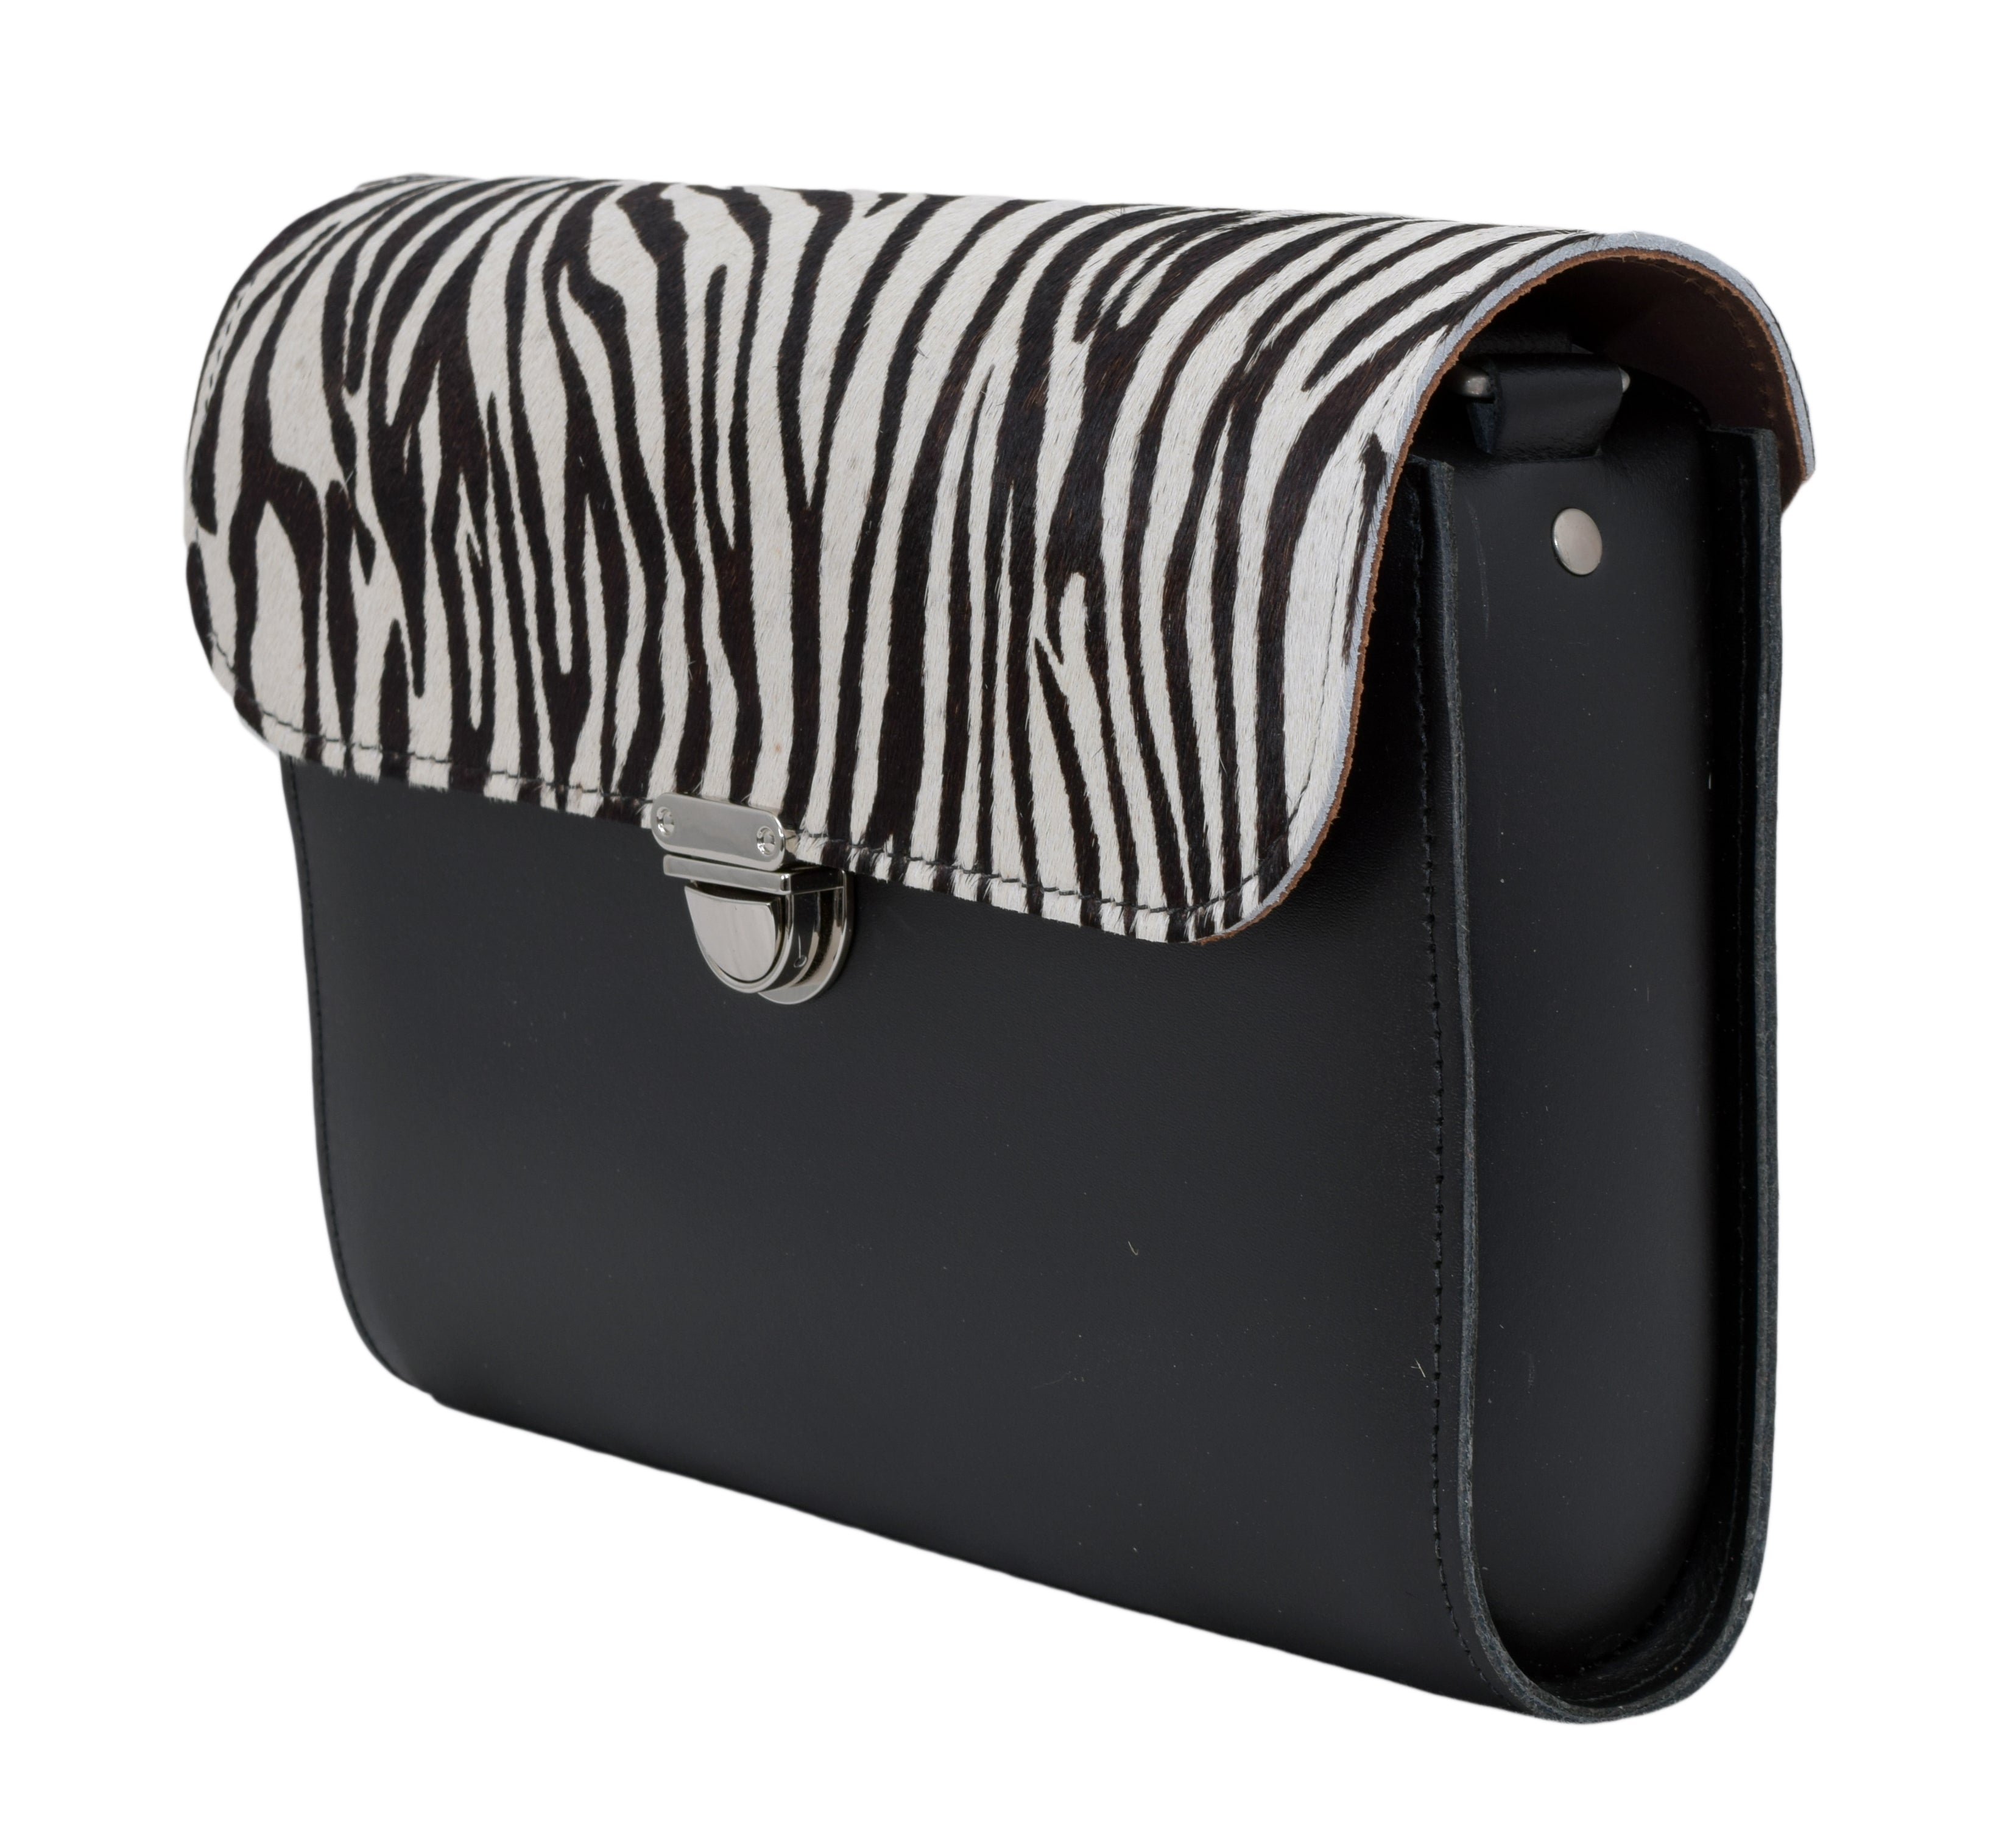 Zebra Cowhide Handmade Womens Large Leather Satchel Cross body Classic Handbag. Can be personalised with initials.